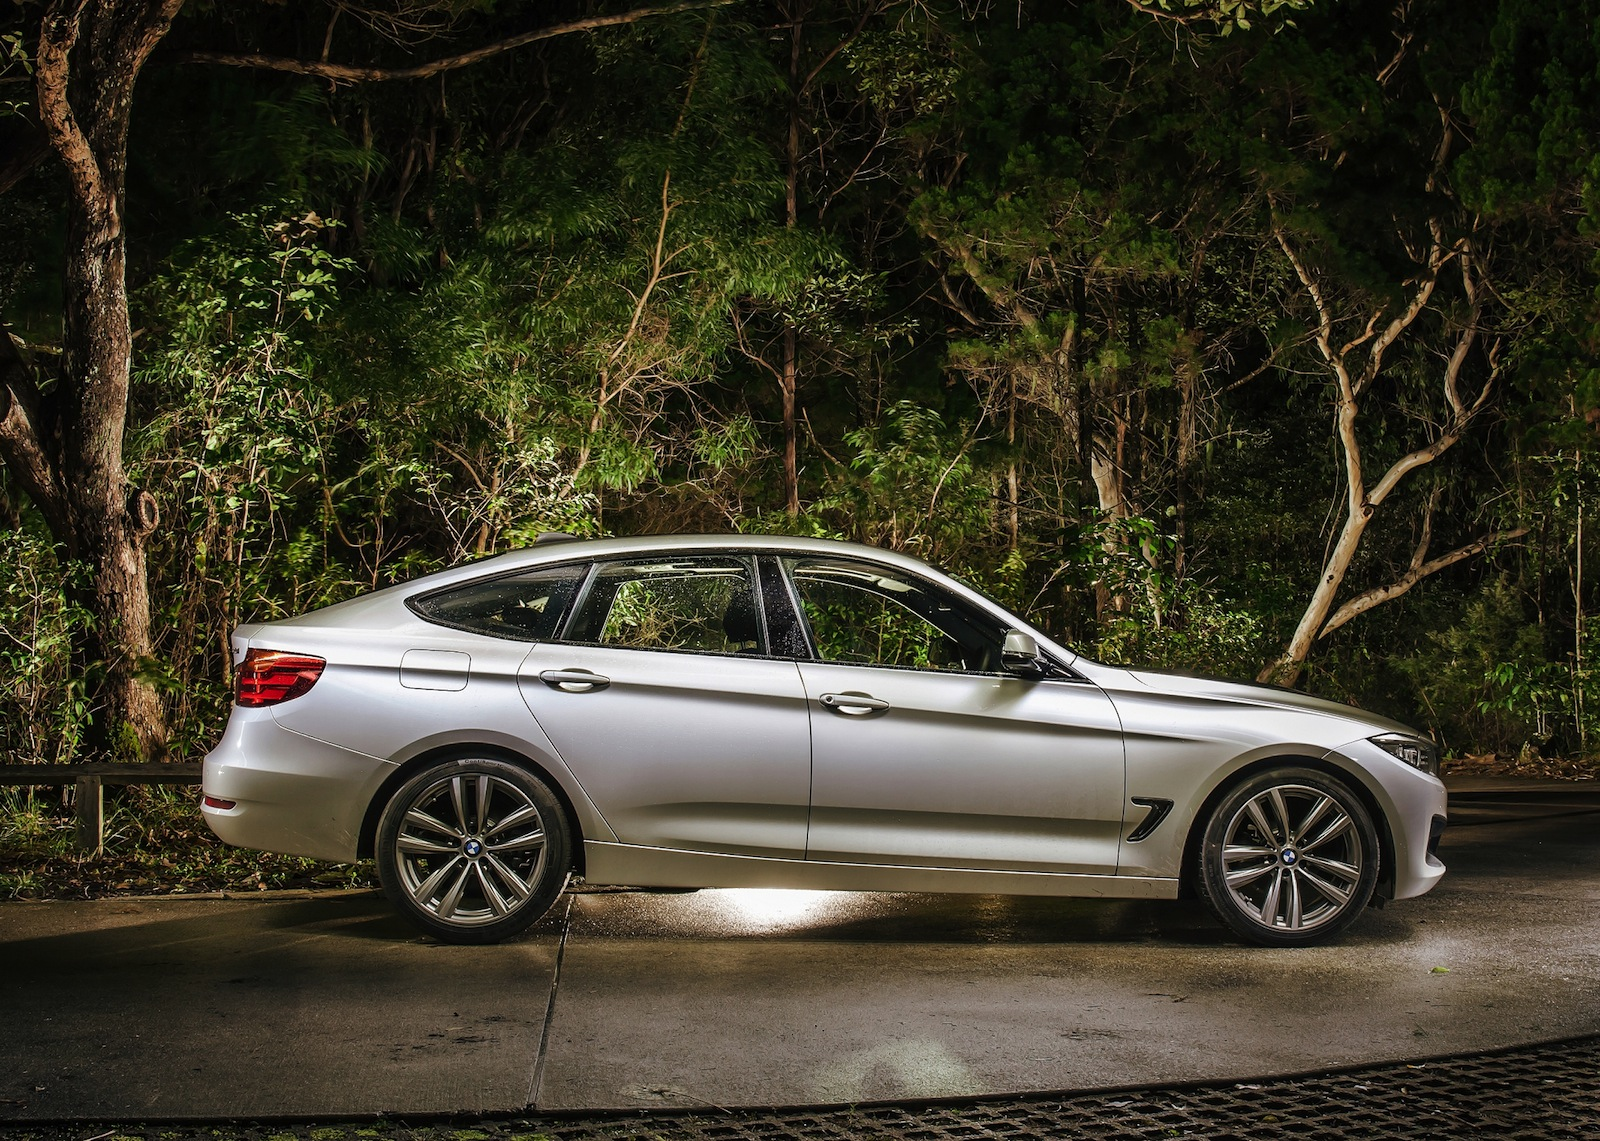 BMW Series Gran Turismo Pricing And Specifications Photos - Bmw 3 series gran turismo price